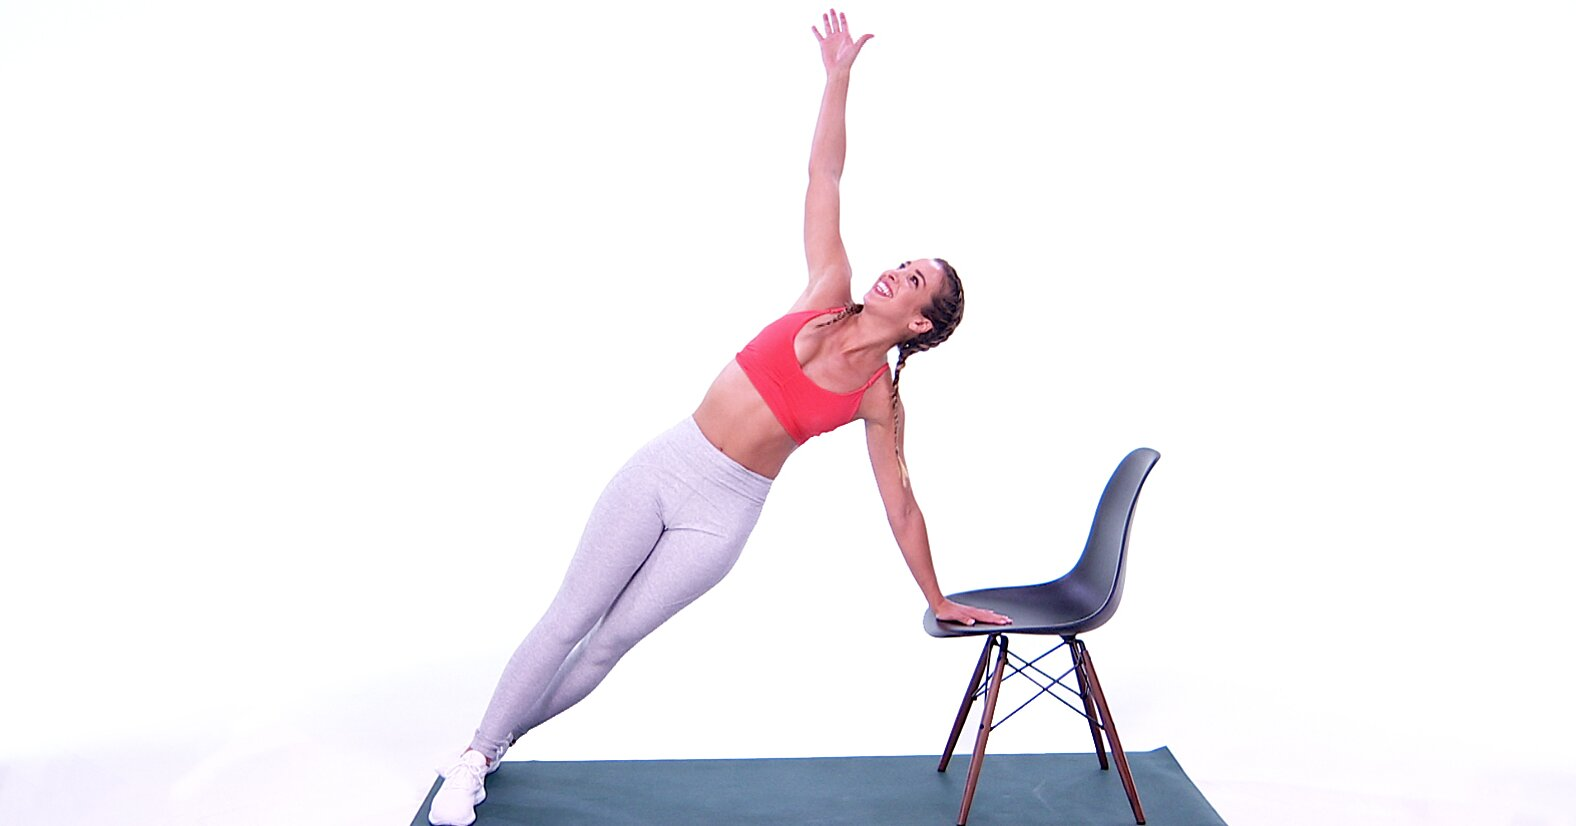 All You Need for This Upper Body Workout is a Chair